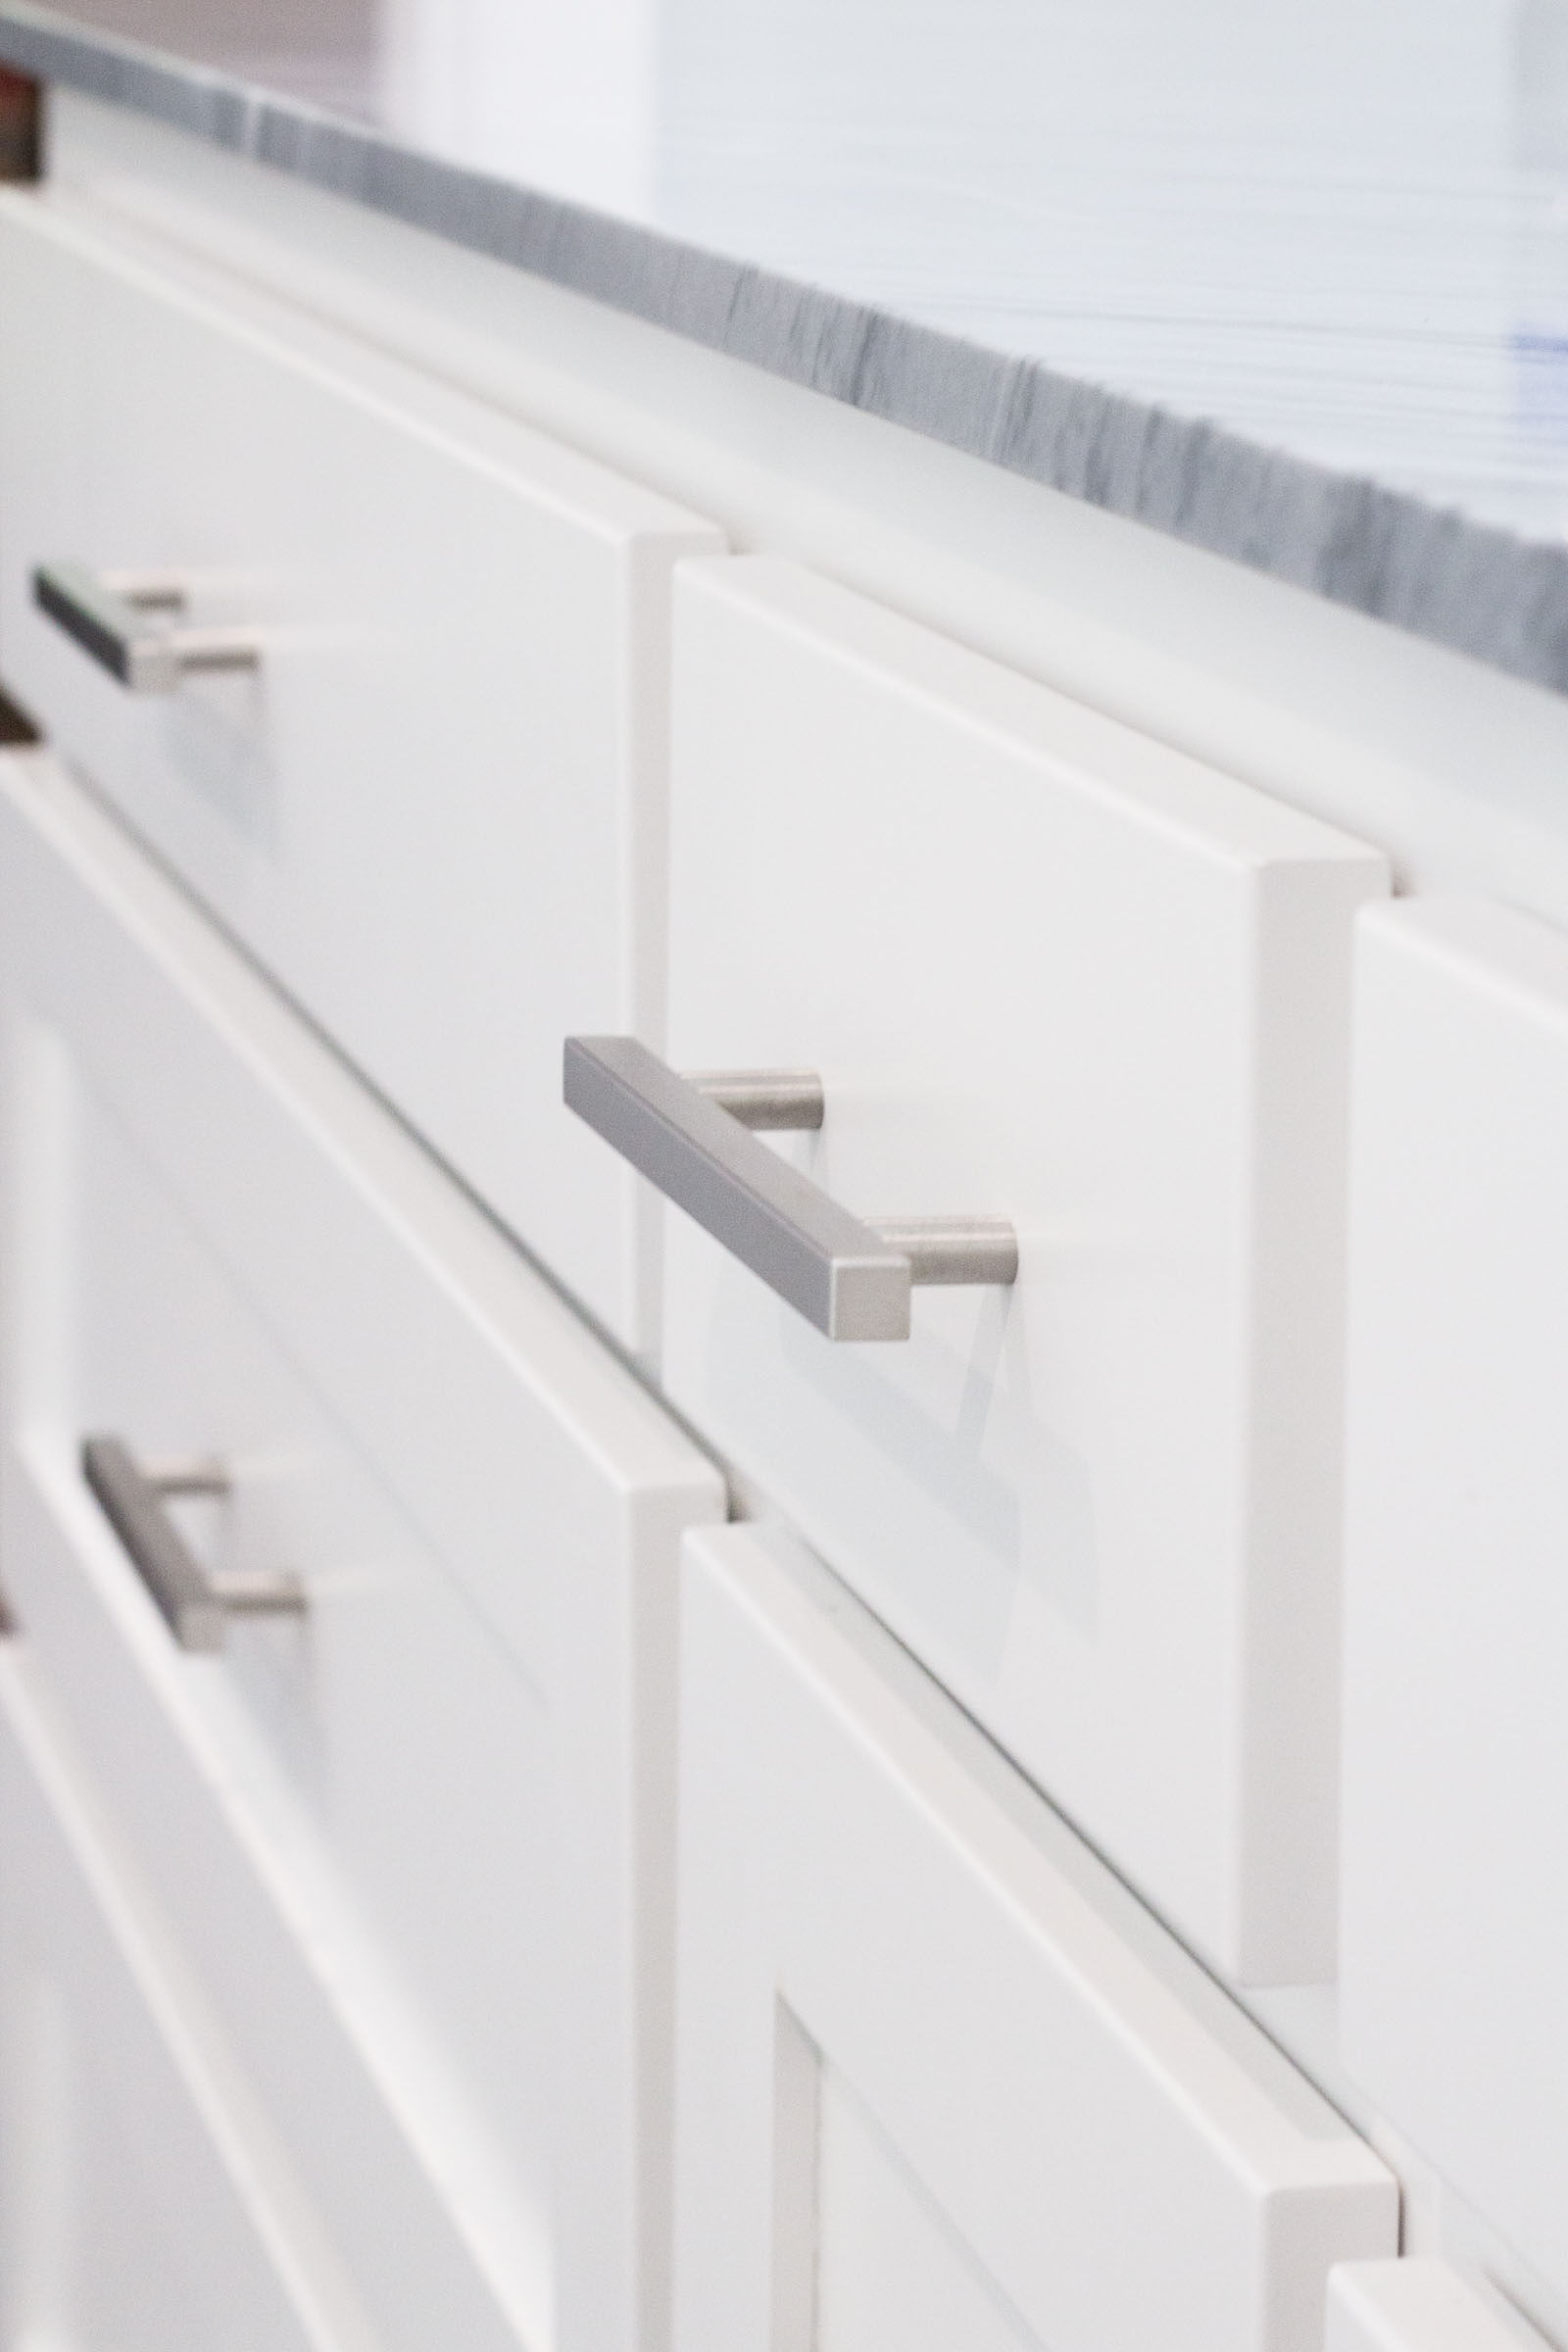 White shaker style bathroom cabinets with grey granite countertop and matte silver hardware